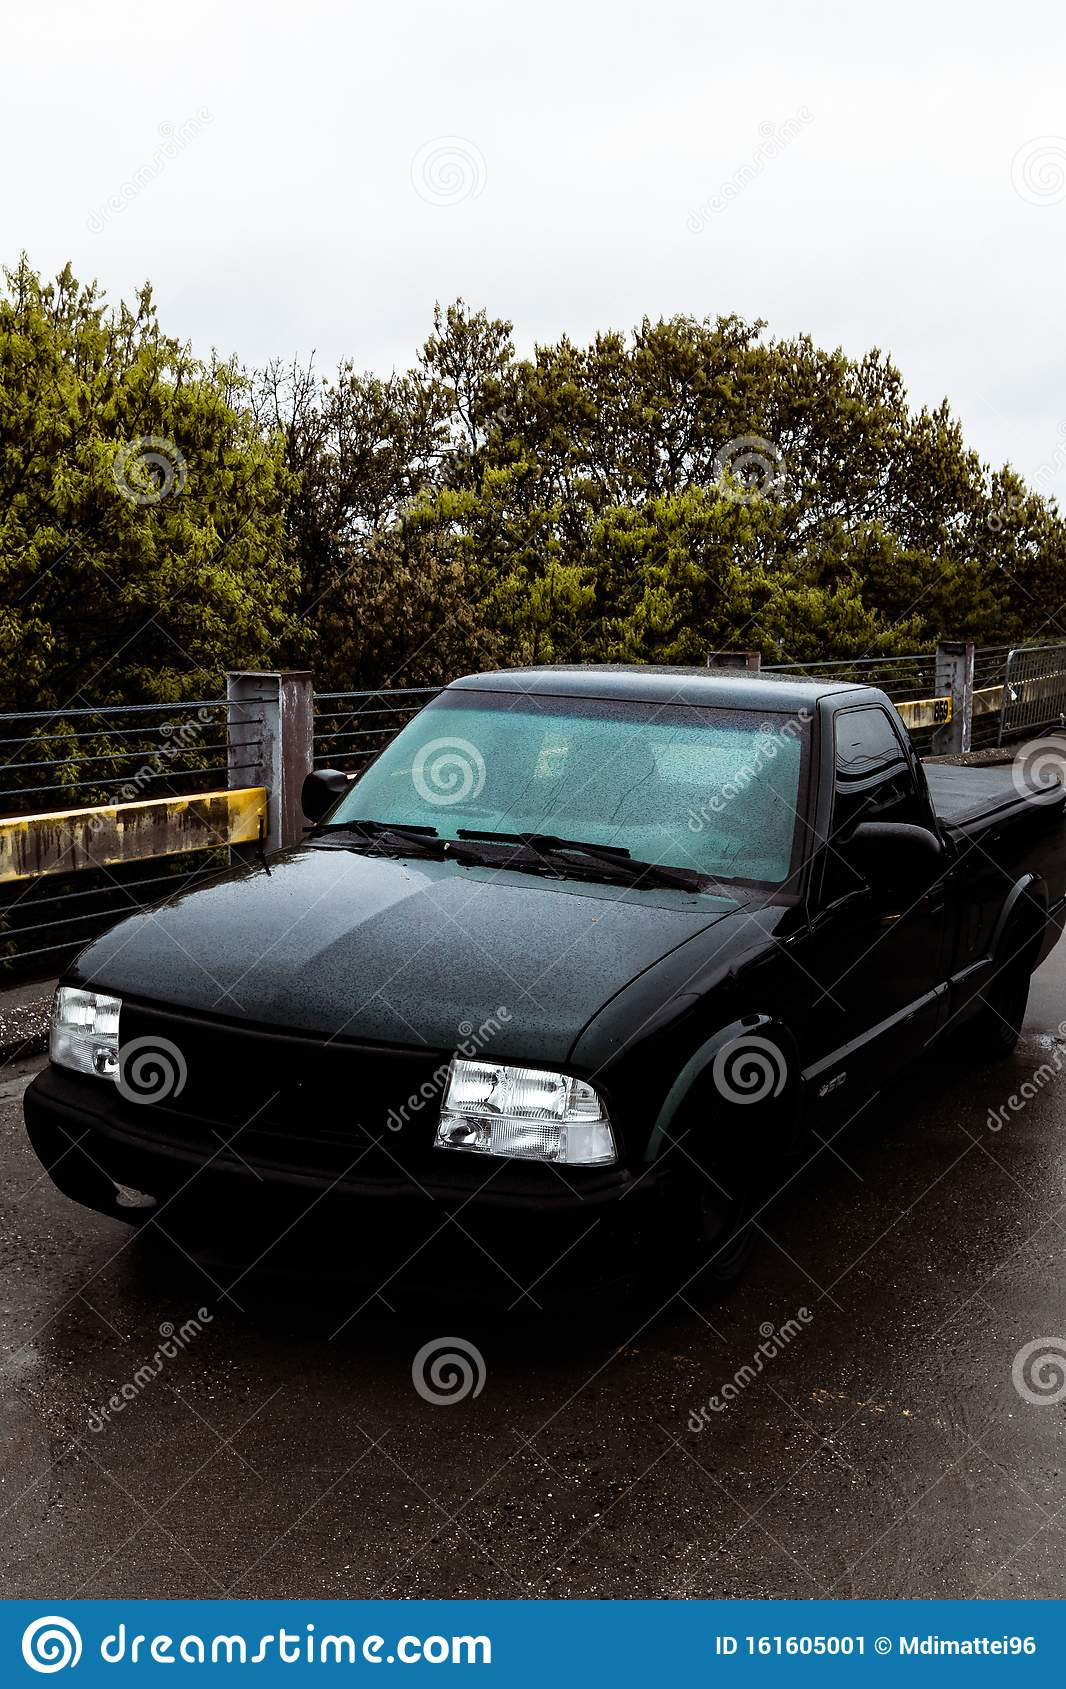 Pick Up Truck Simple Outdoor Parking Garage Portrait Stock Image Image Of Background Pick 161605001